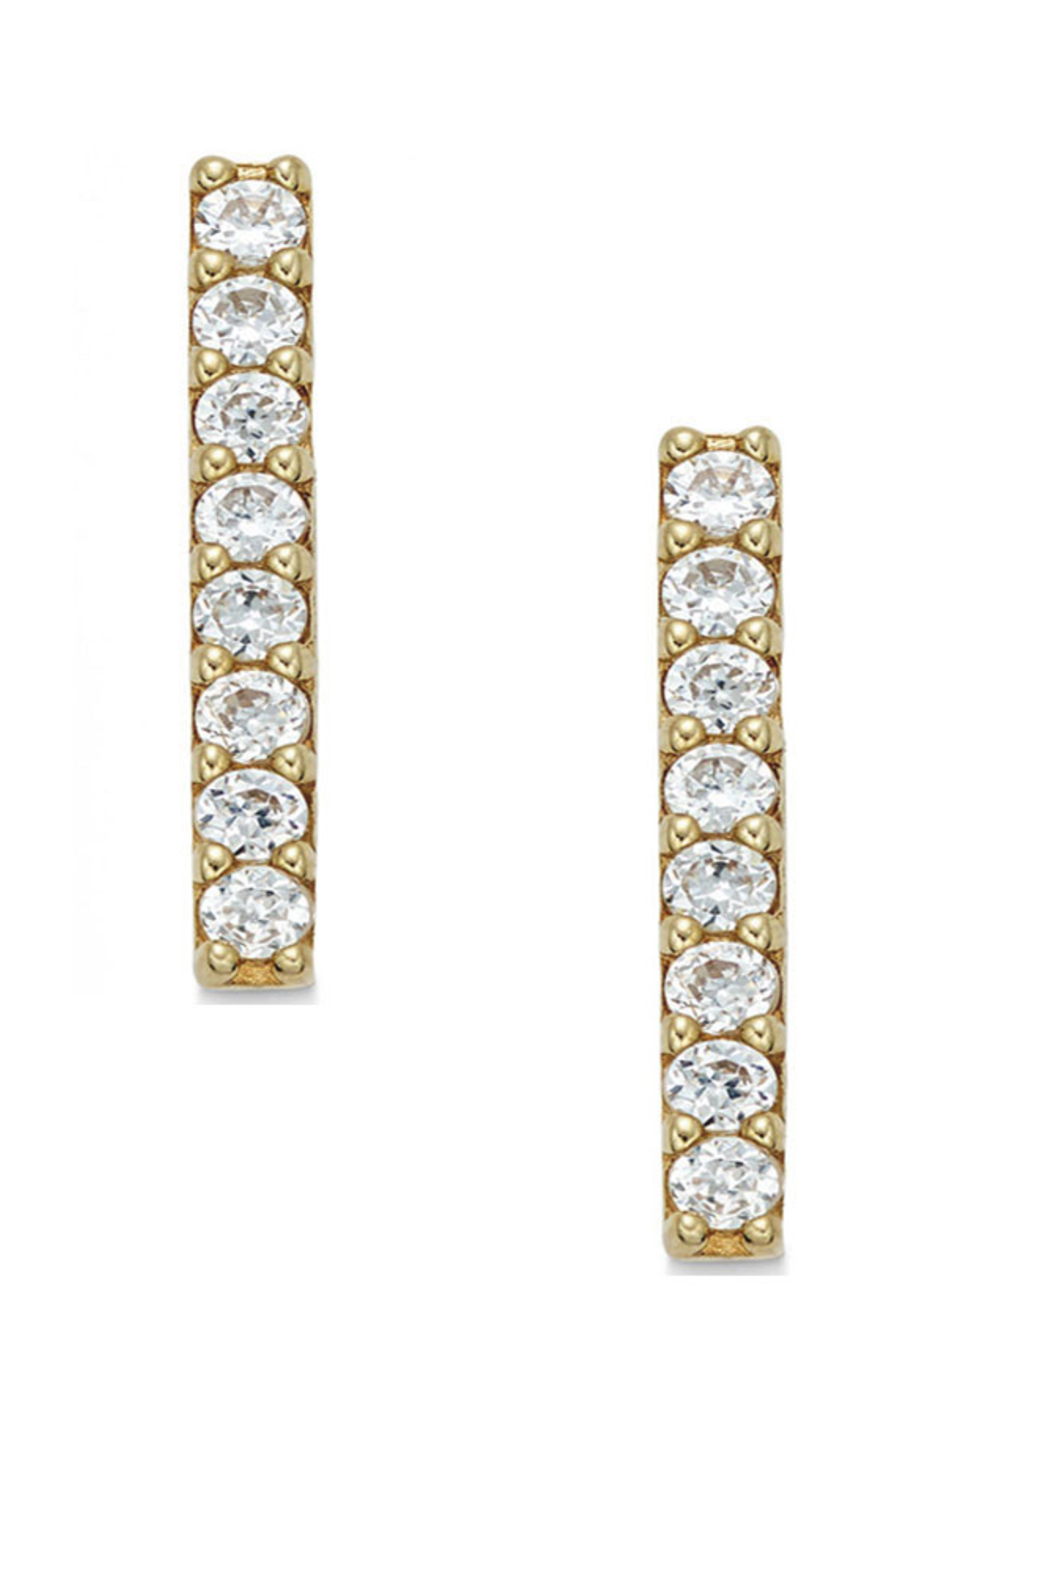 Jaime Nicole Gold Stud Earrings - Main Image